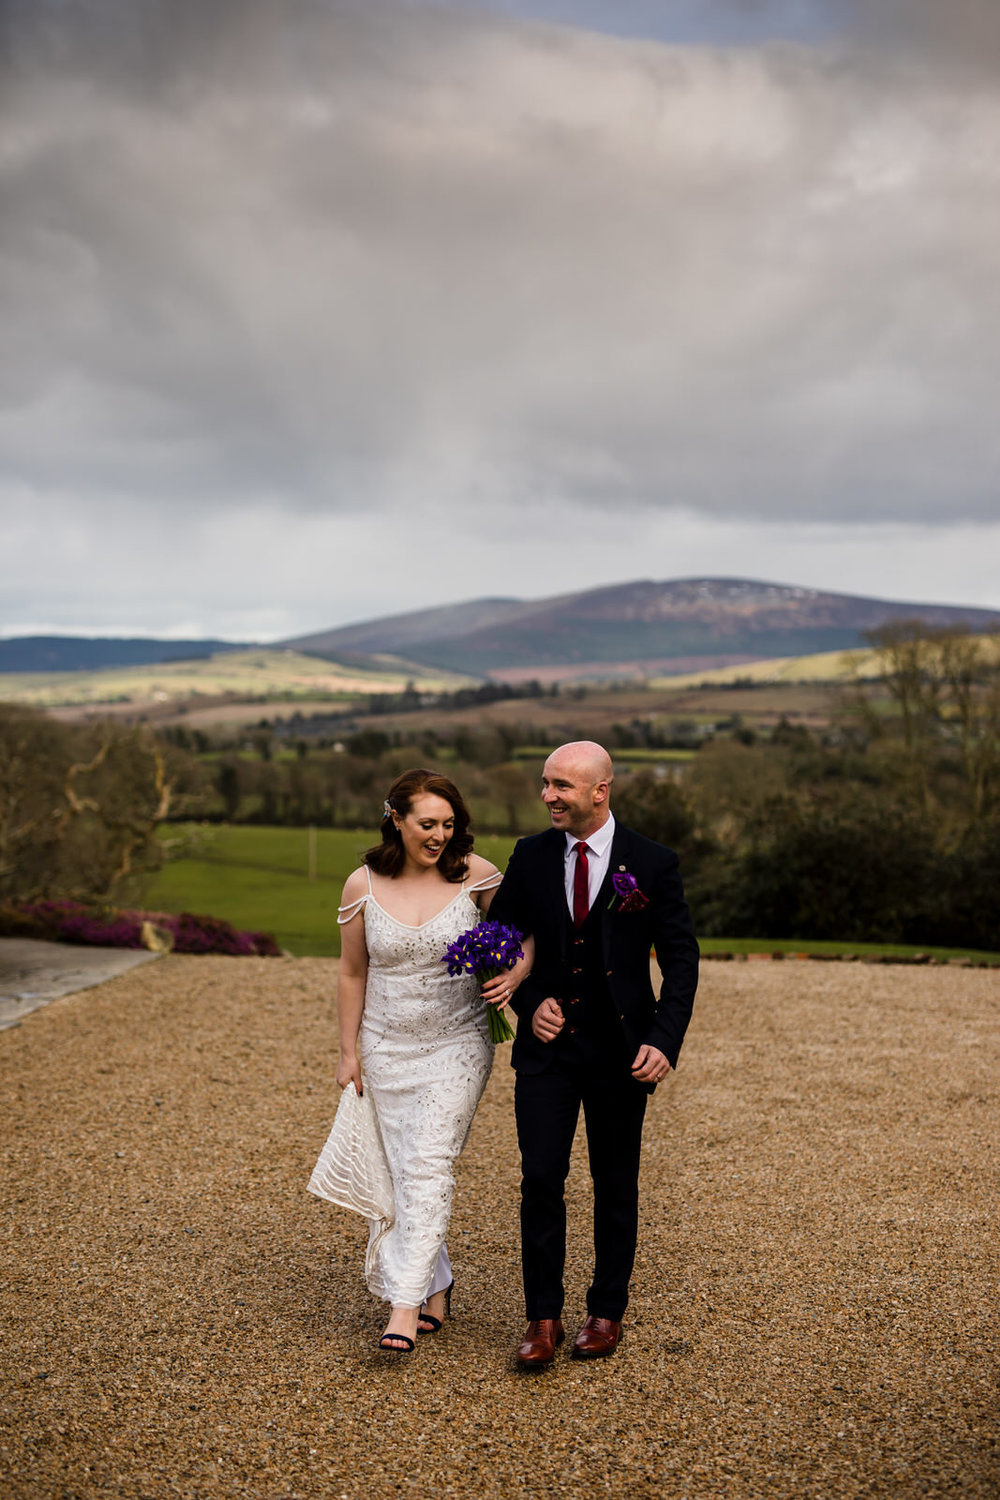 ballybeg-house-wedding-photography-roger-kenny-069.jpg